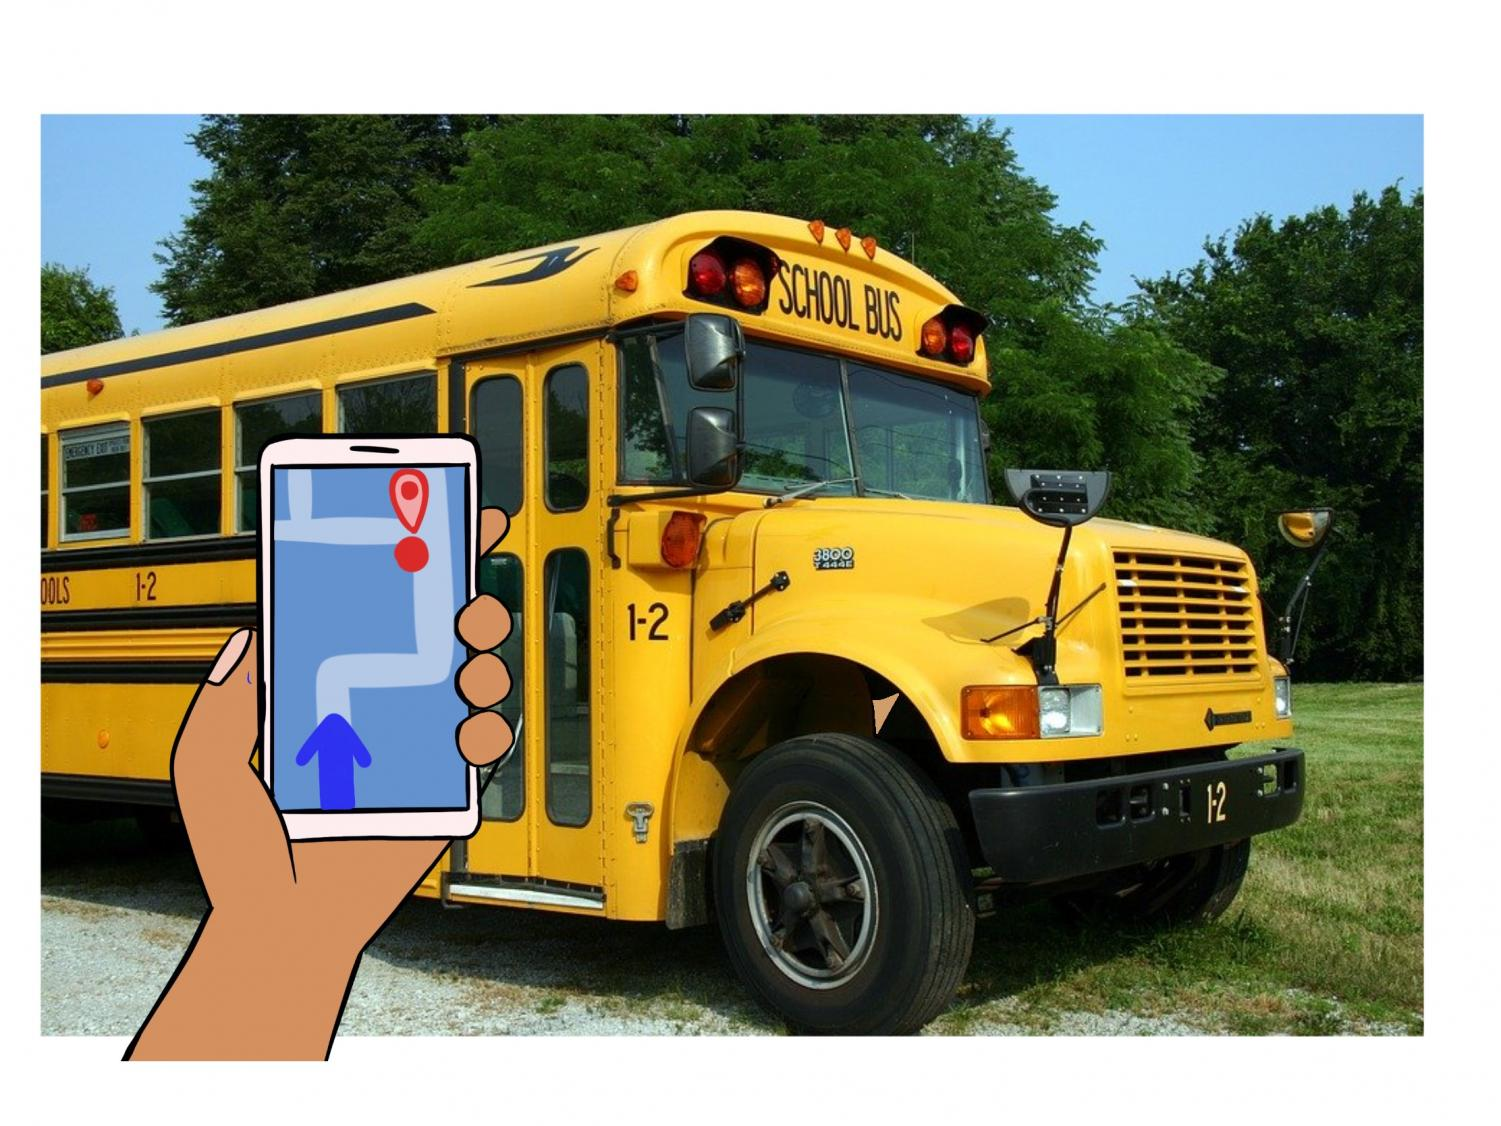 Superintendent Smith's bus app proposal can save time for students.